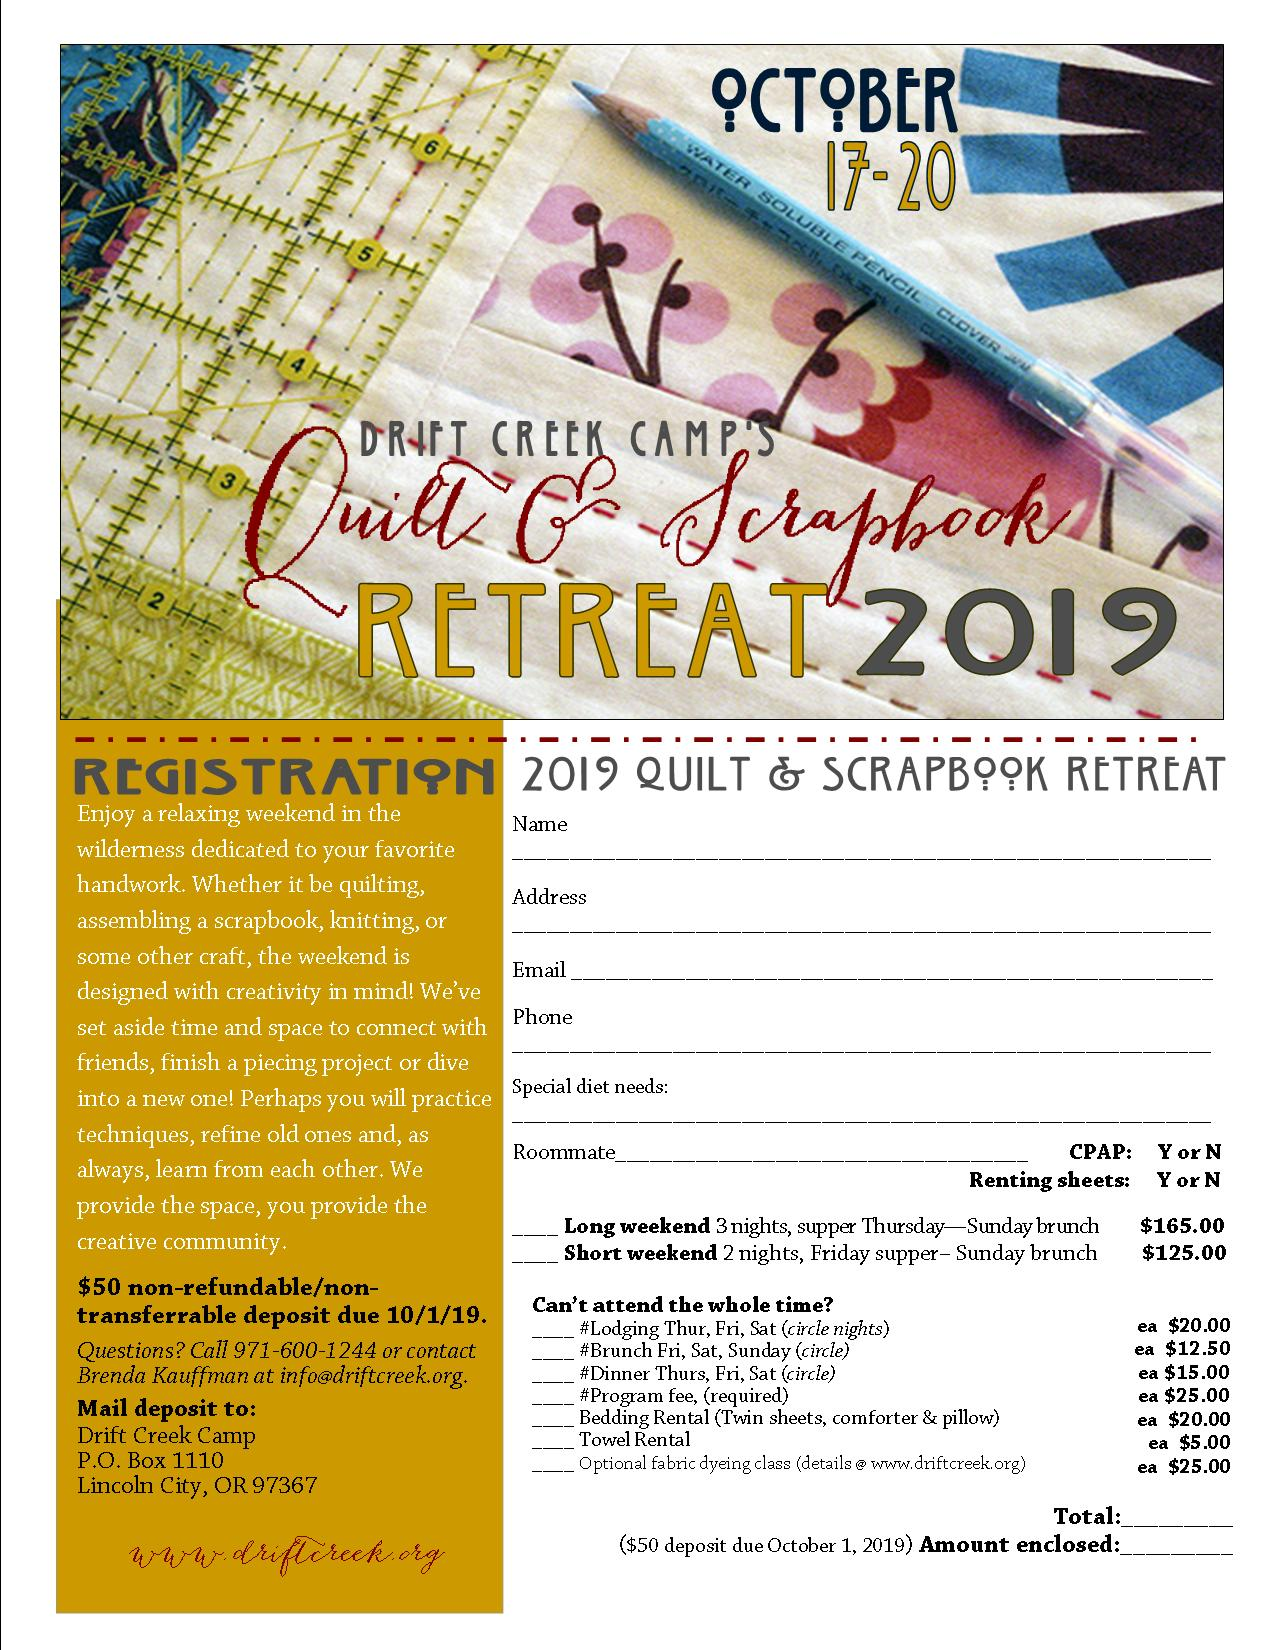 Fall Quilting Retreat | Drift Creek Camp